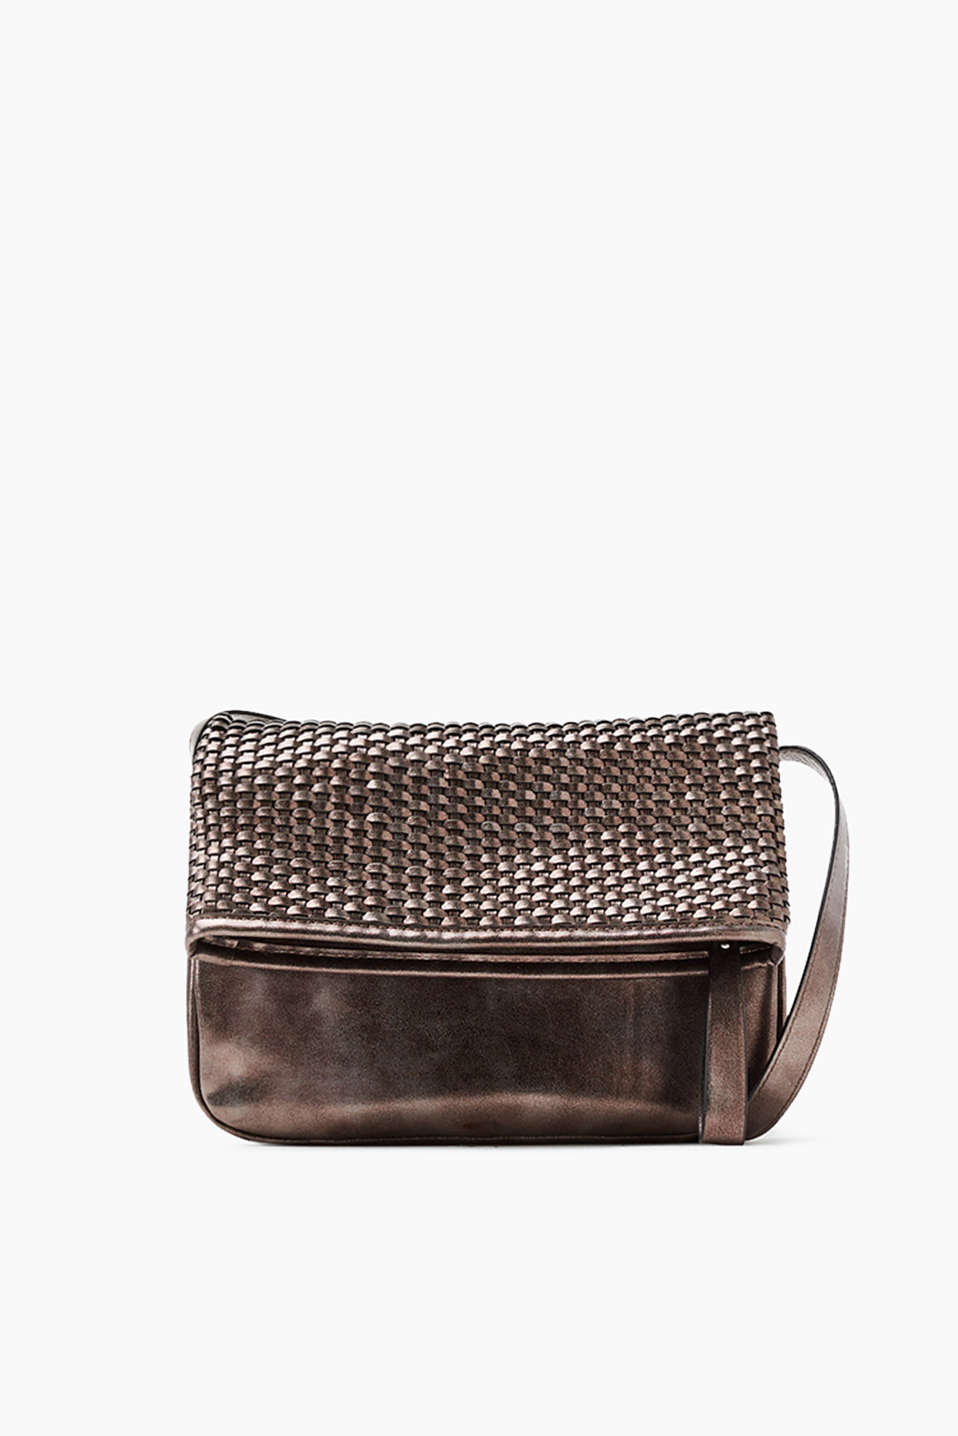 Med kant i førsteklasses fletlook: flap-over-bag i trendy metallic-look